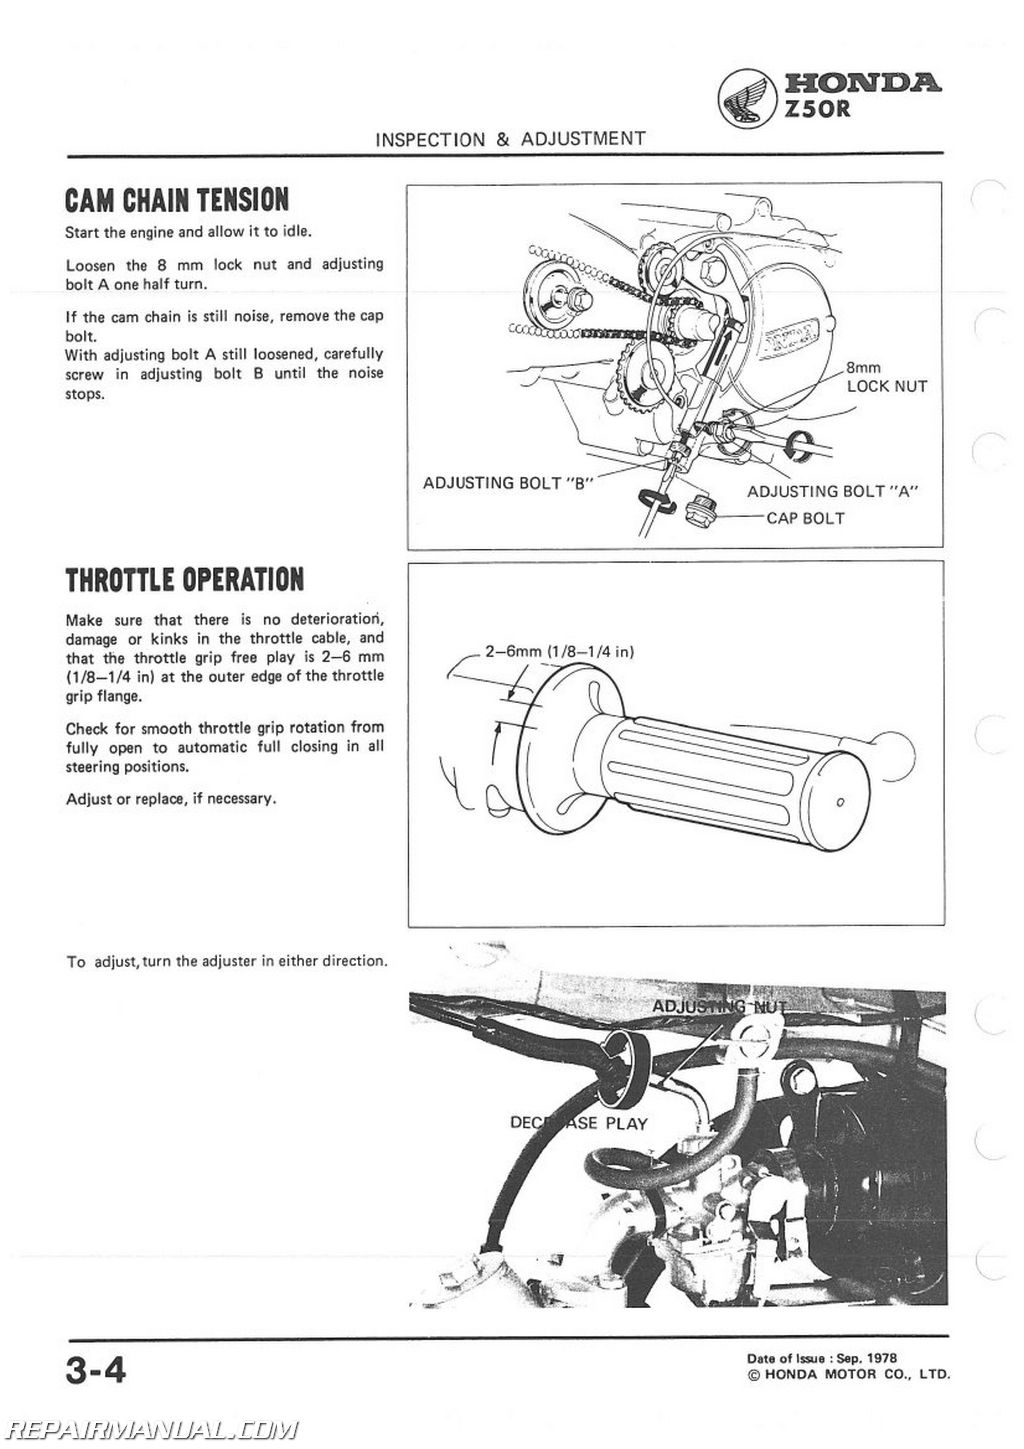 1979-1987 Honda Z50R Motorcycle Service Manual